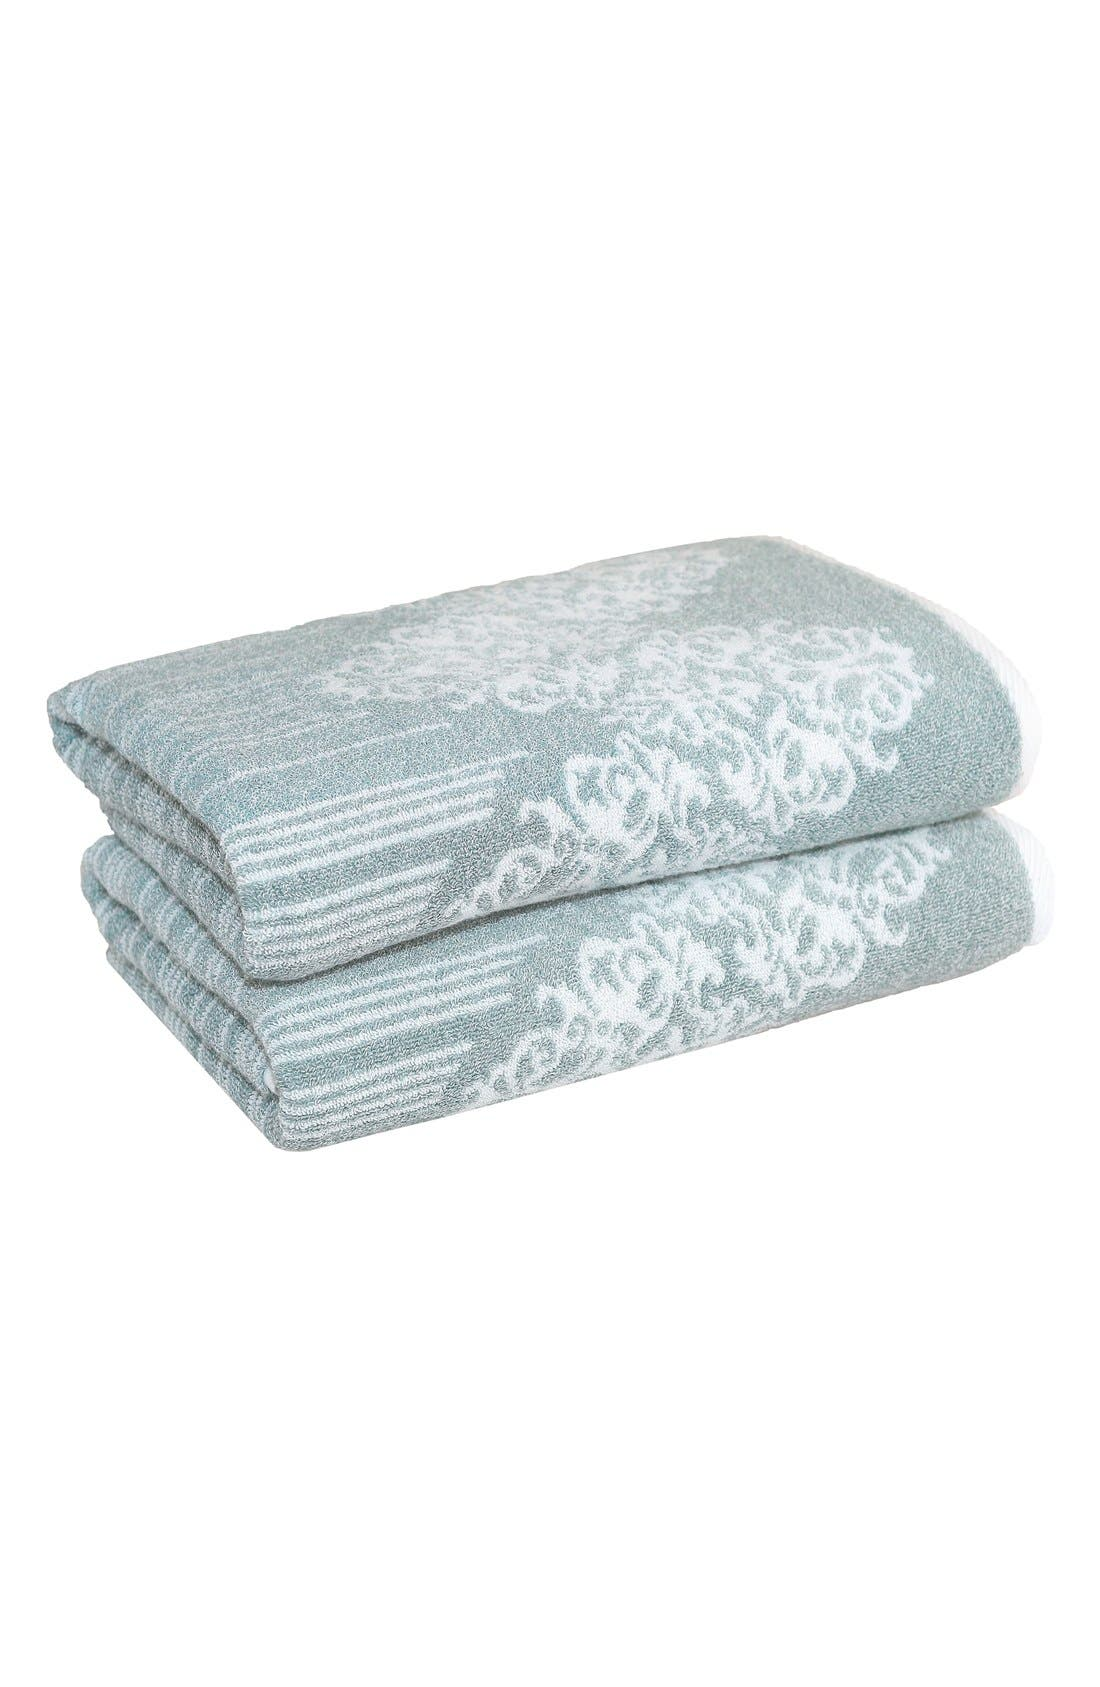 Linum 'Gioia' Turkish Cotton Bath Towels (Set of 2)